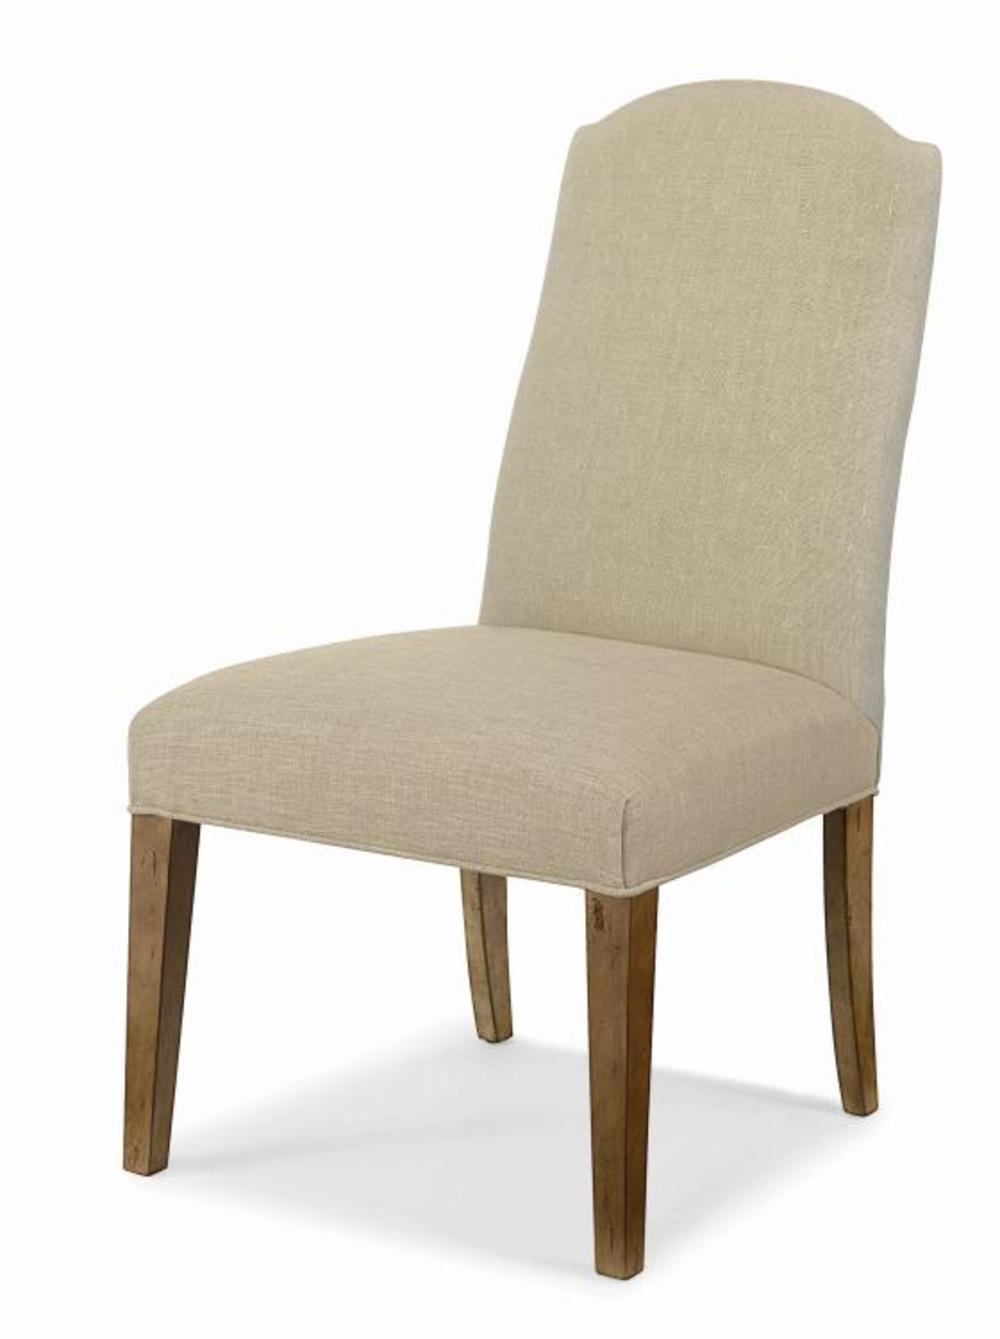 CENTURY FURNITURE - Chandler Curved Back Exposed Wood with Arch Top